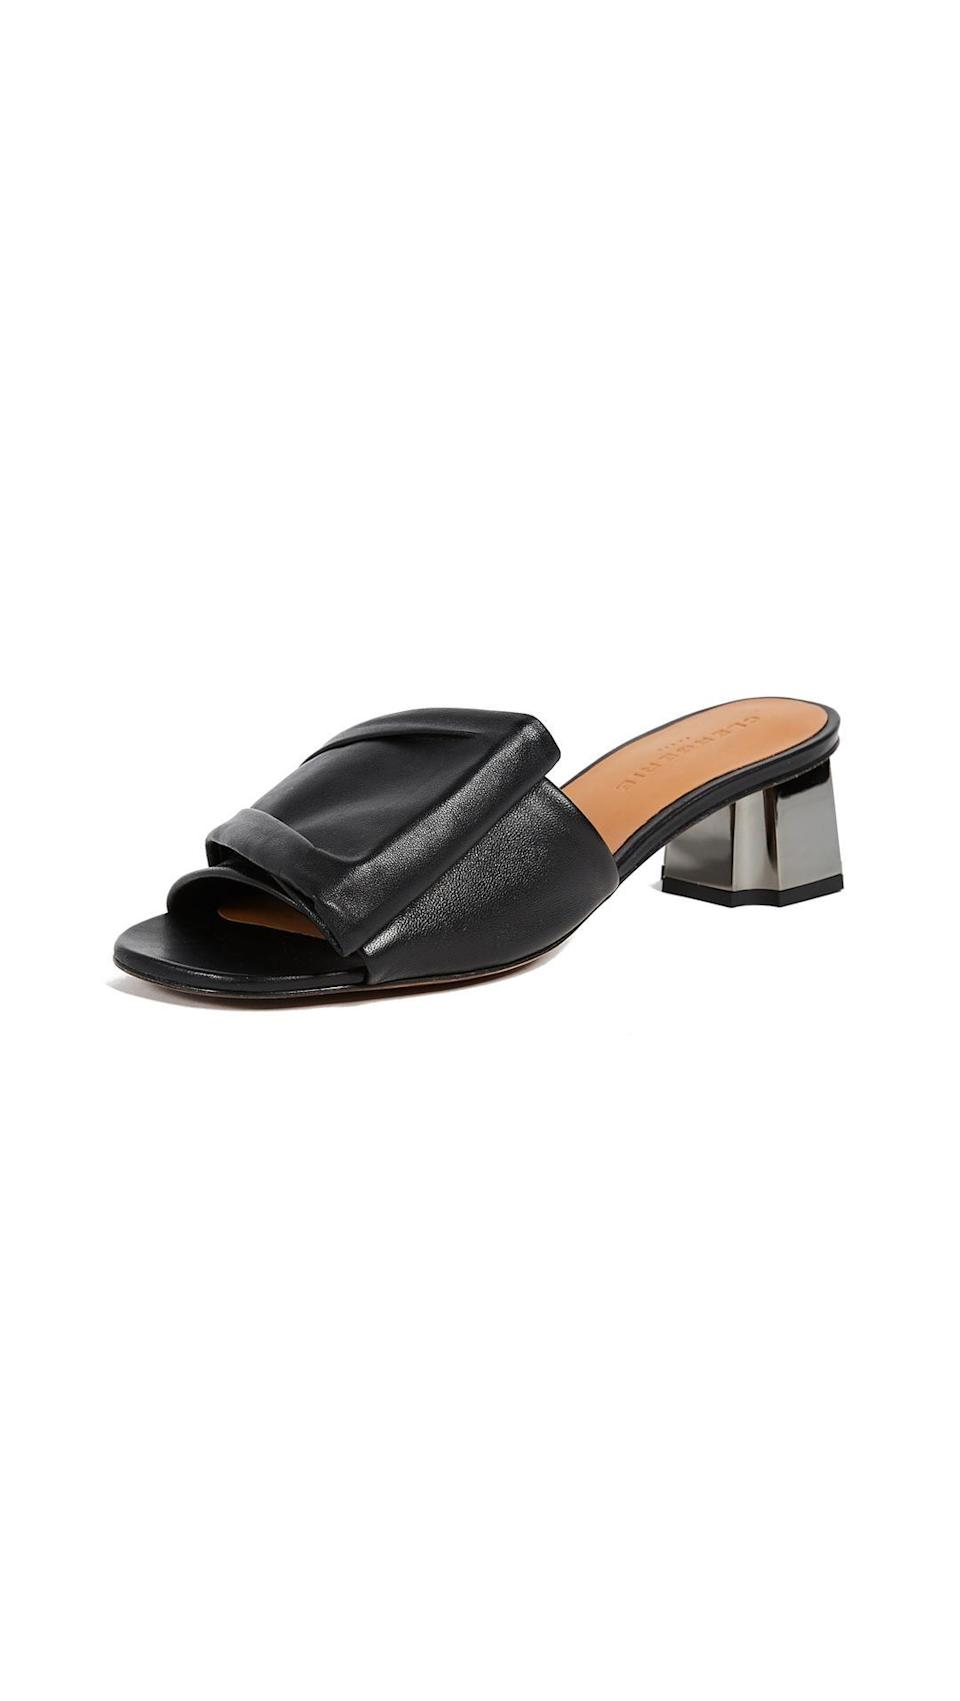 Available in sizes 36 to 37.